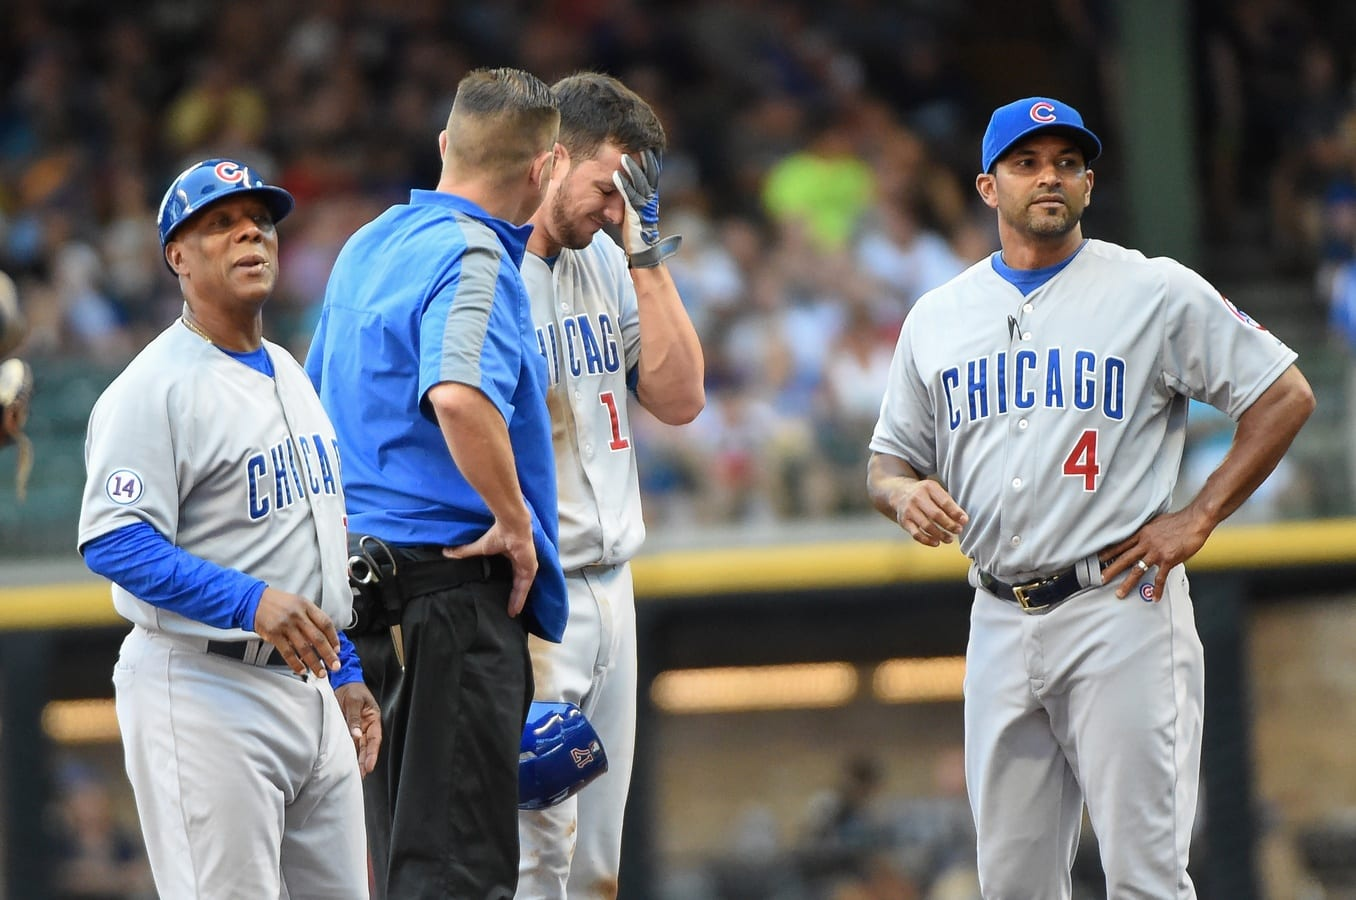 Dodgers Managerial Candidate Profile: Dave Martinez Primed For Next Step